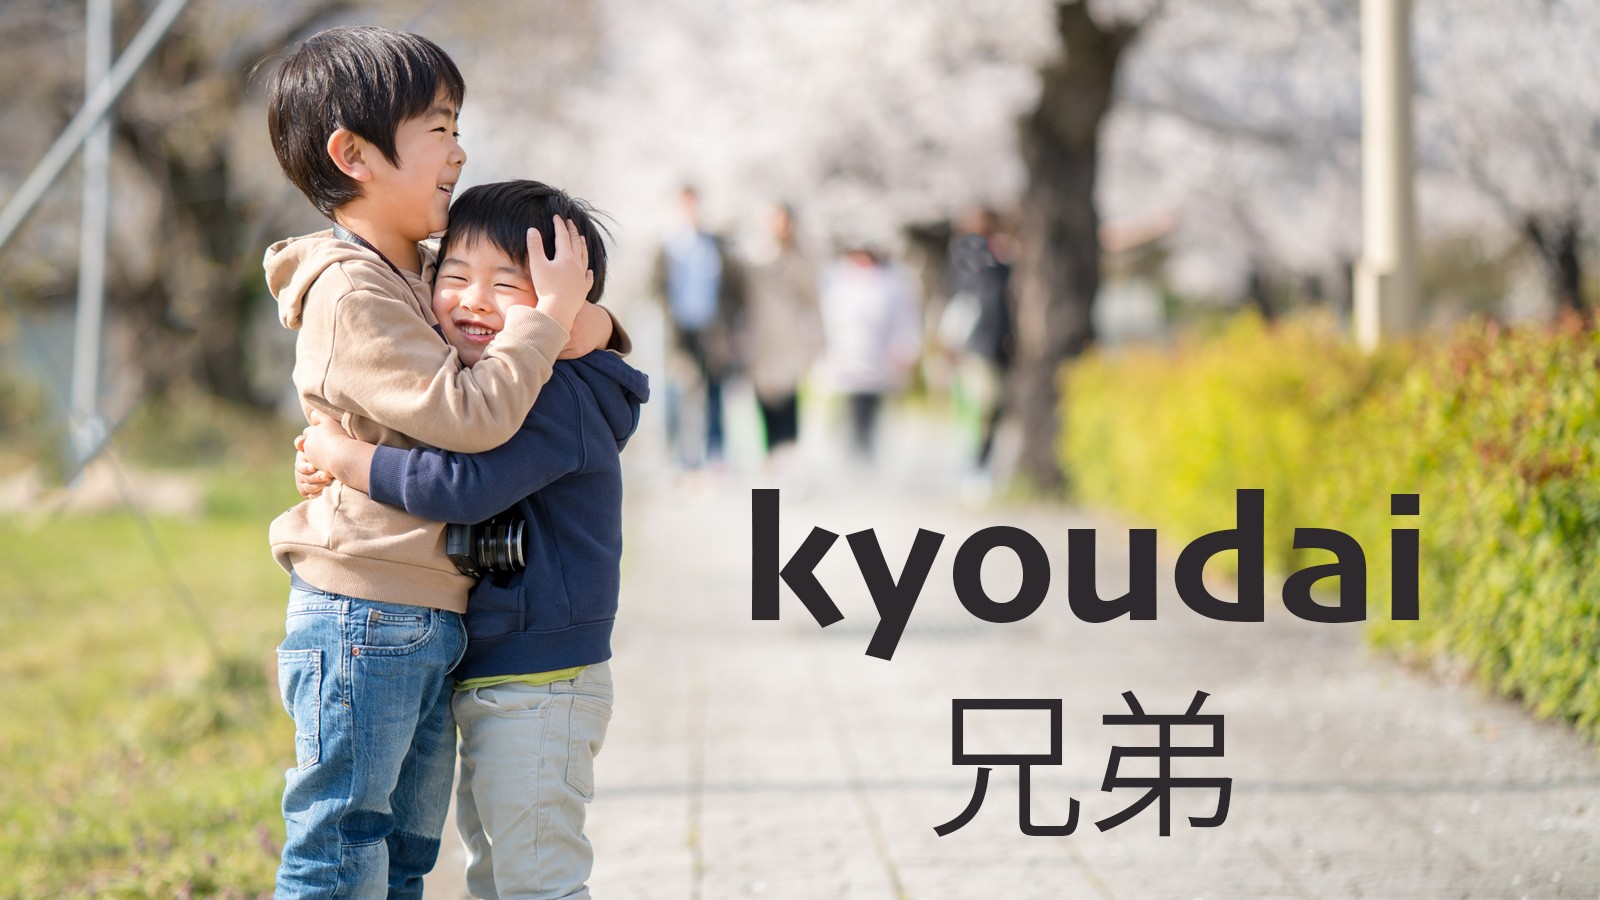 japanese word kyoudai meaning brother